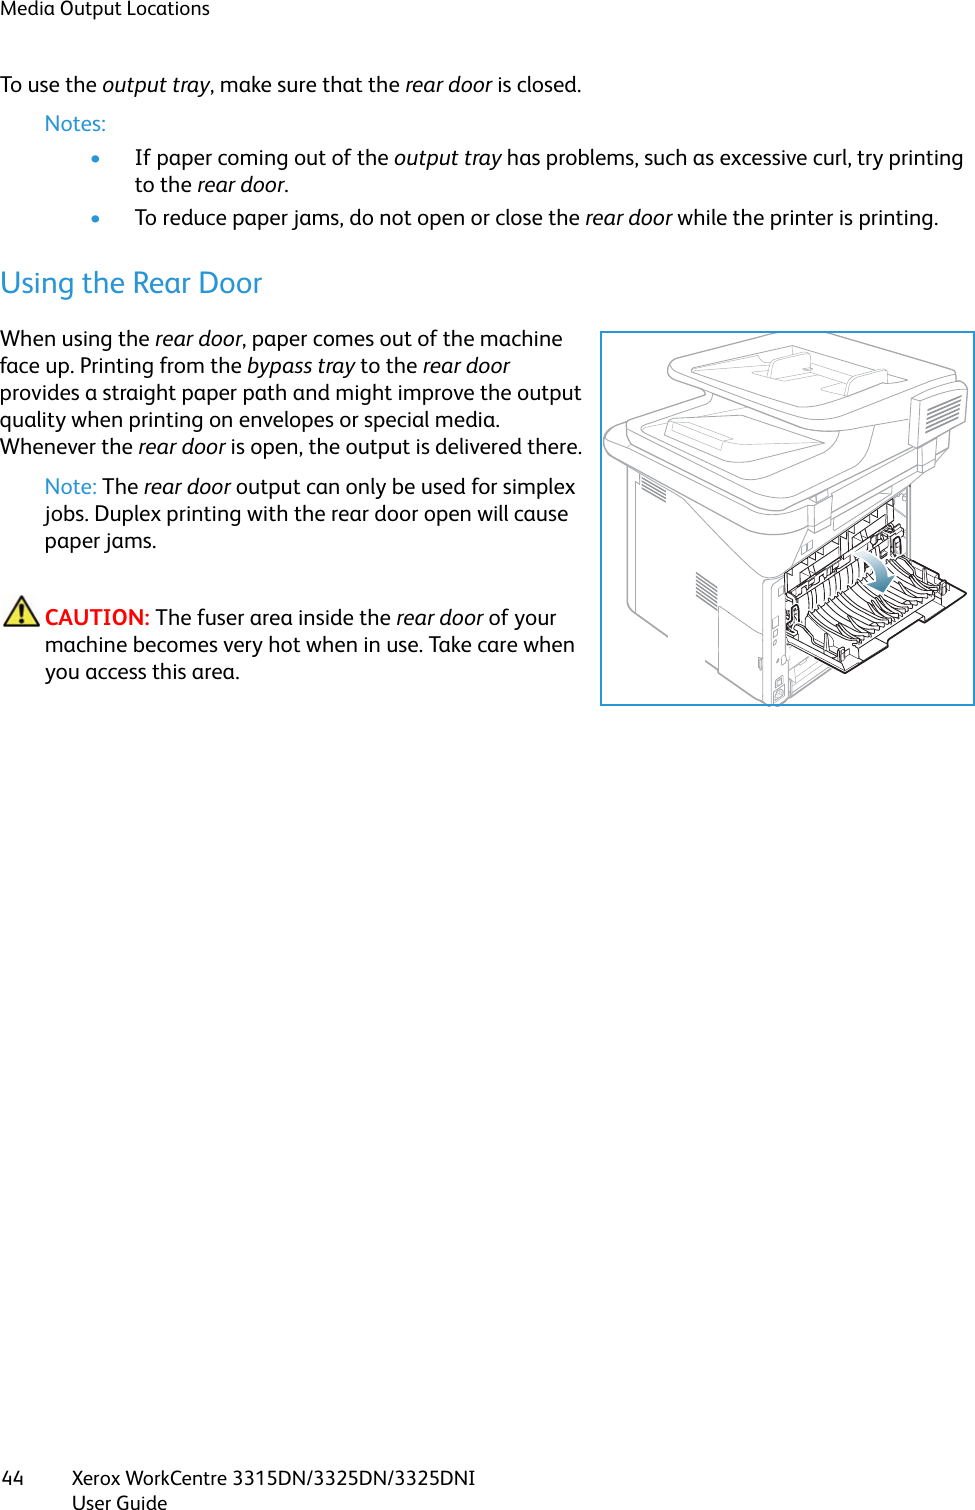 Xerox Workcentre 3315 3325 Users Manual User_guide_